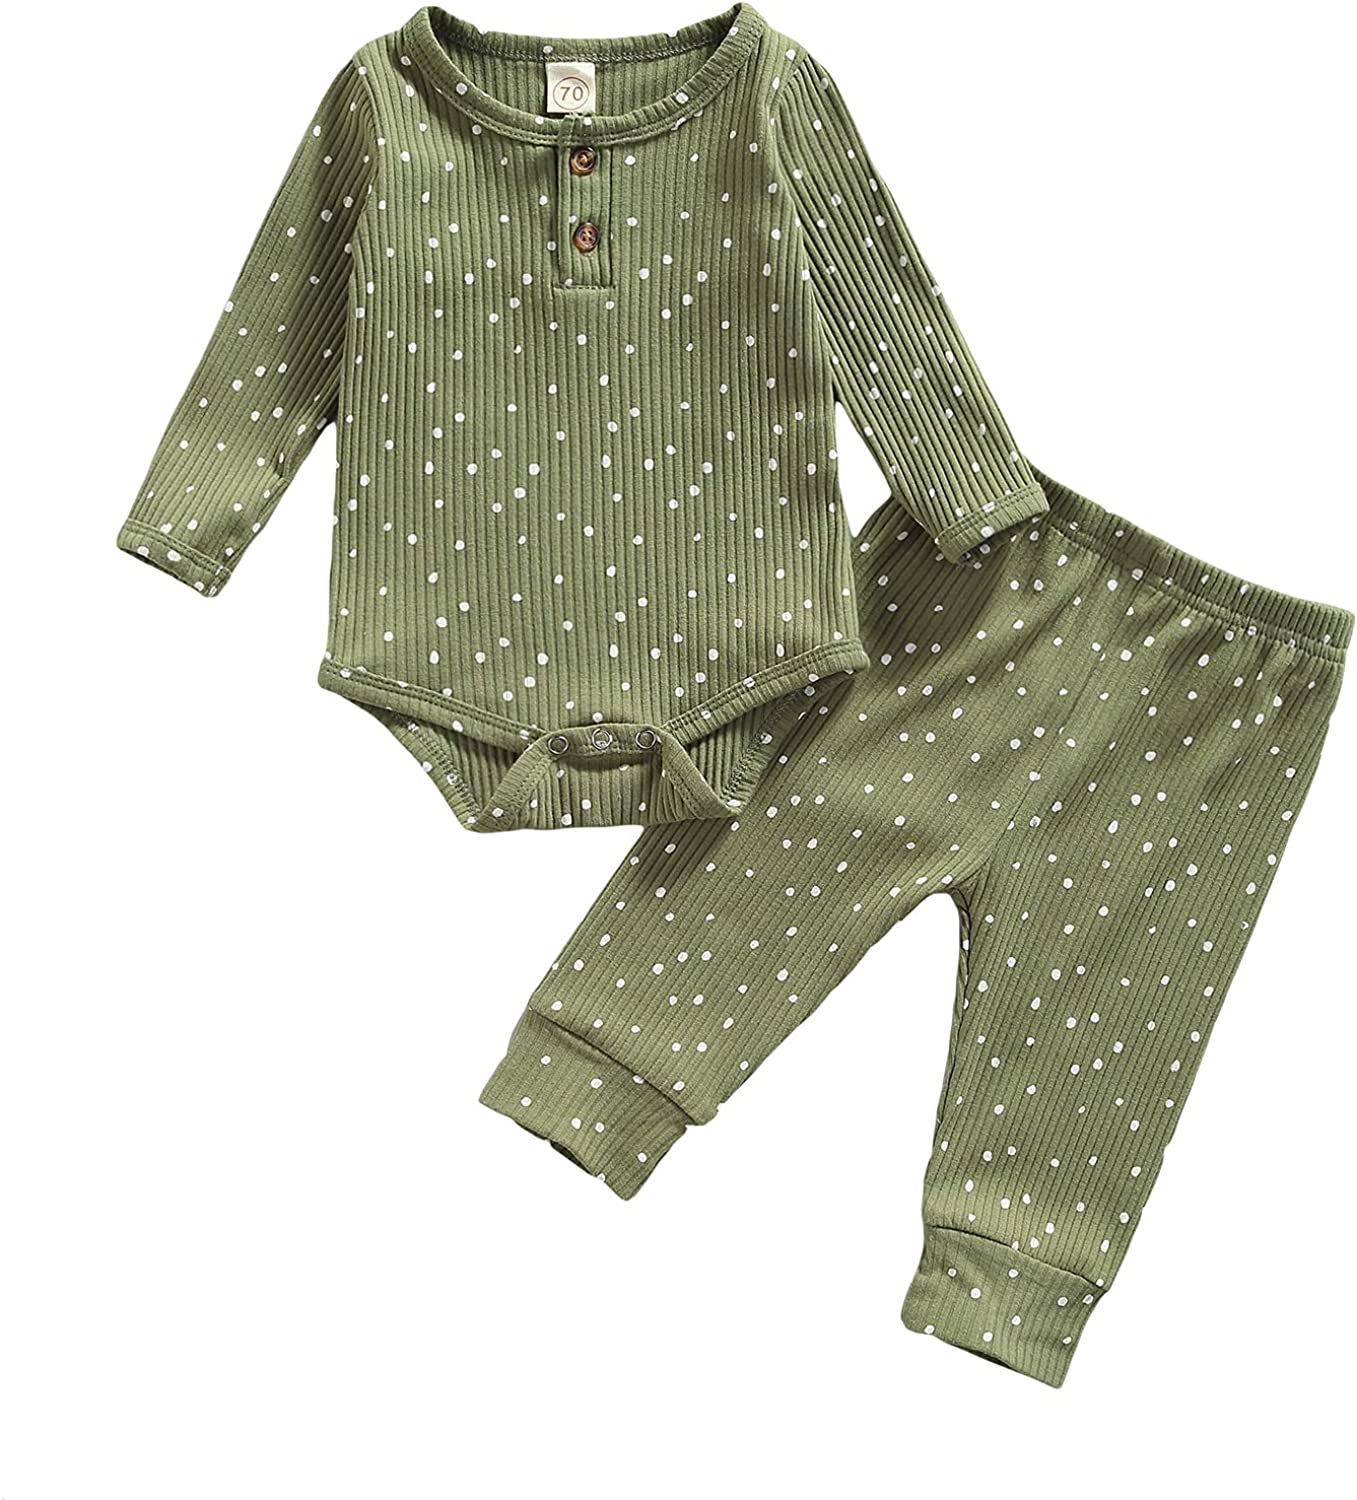 Newborn Infant Baby Boy Girl Ribbed Outfit Long Sleeve Polka Dot Romper Top Pants 2Pcs Fall Winter Clothes